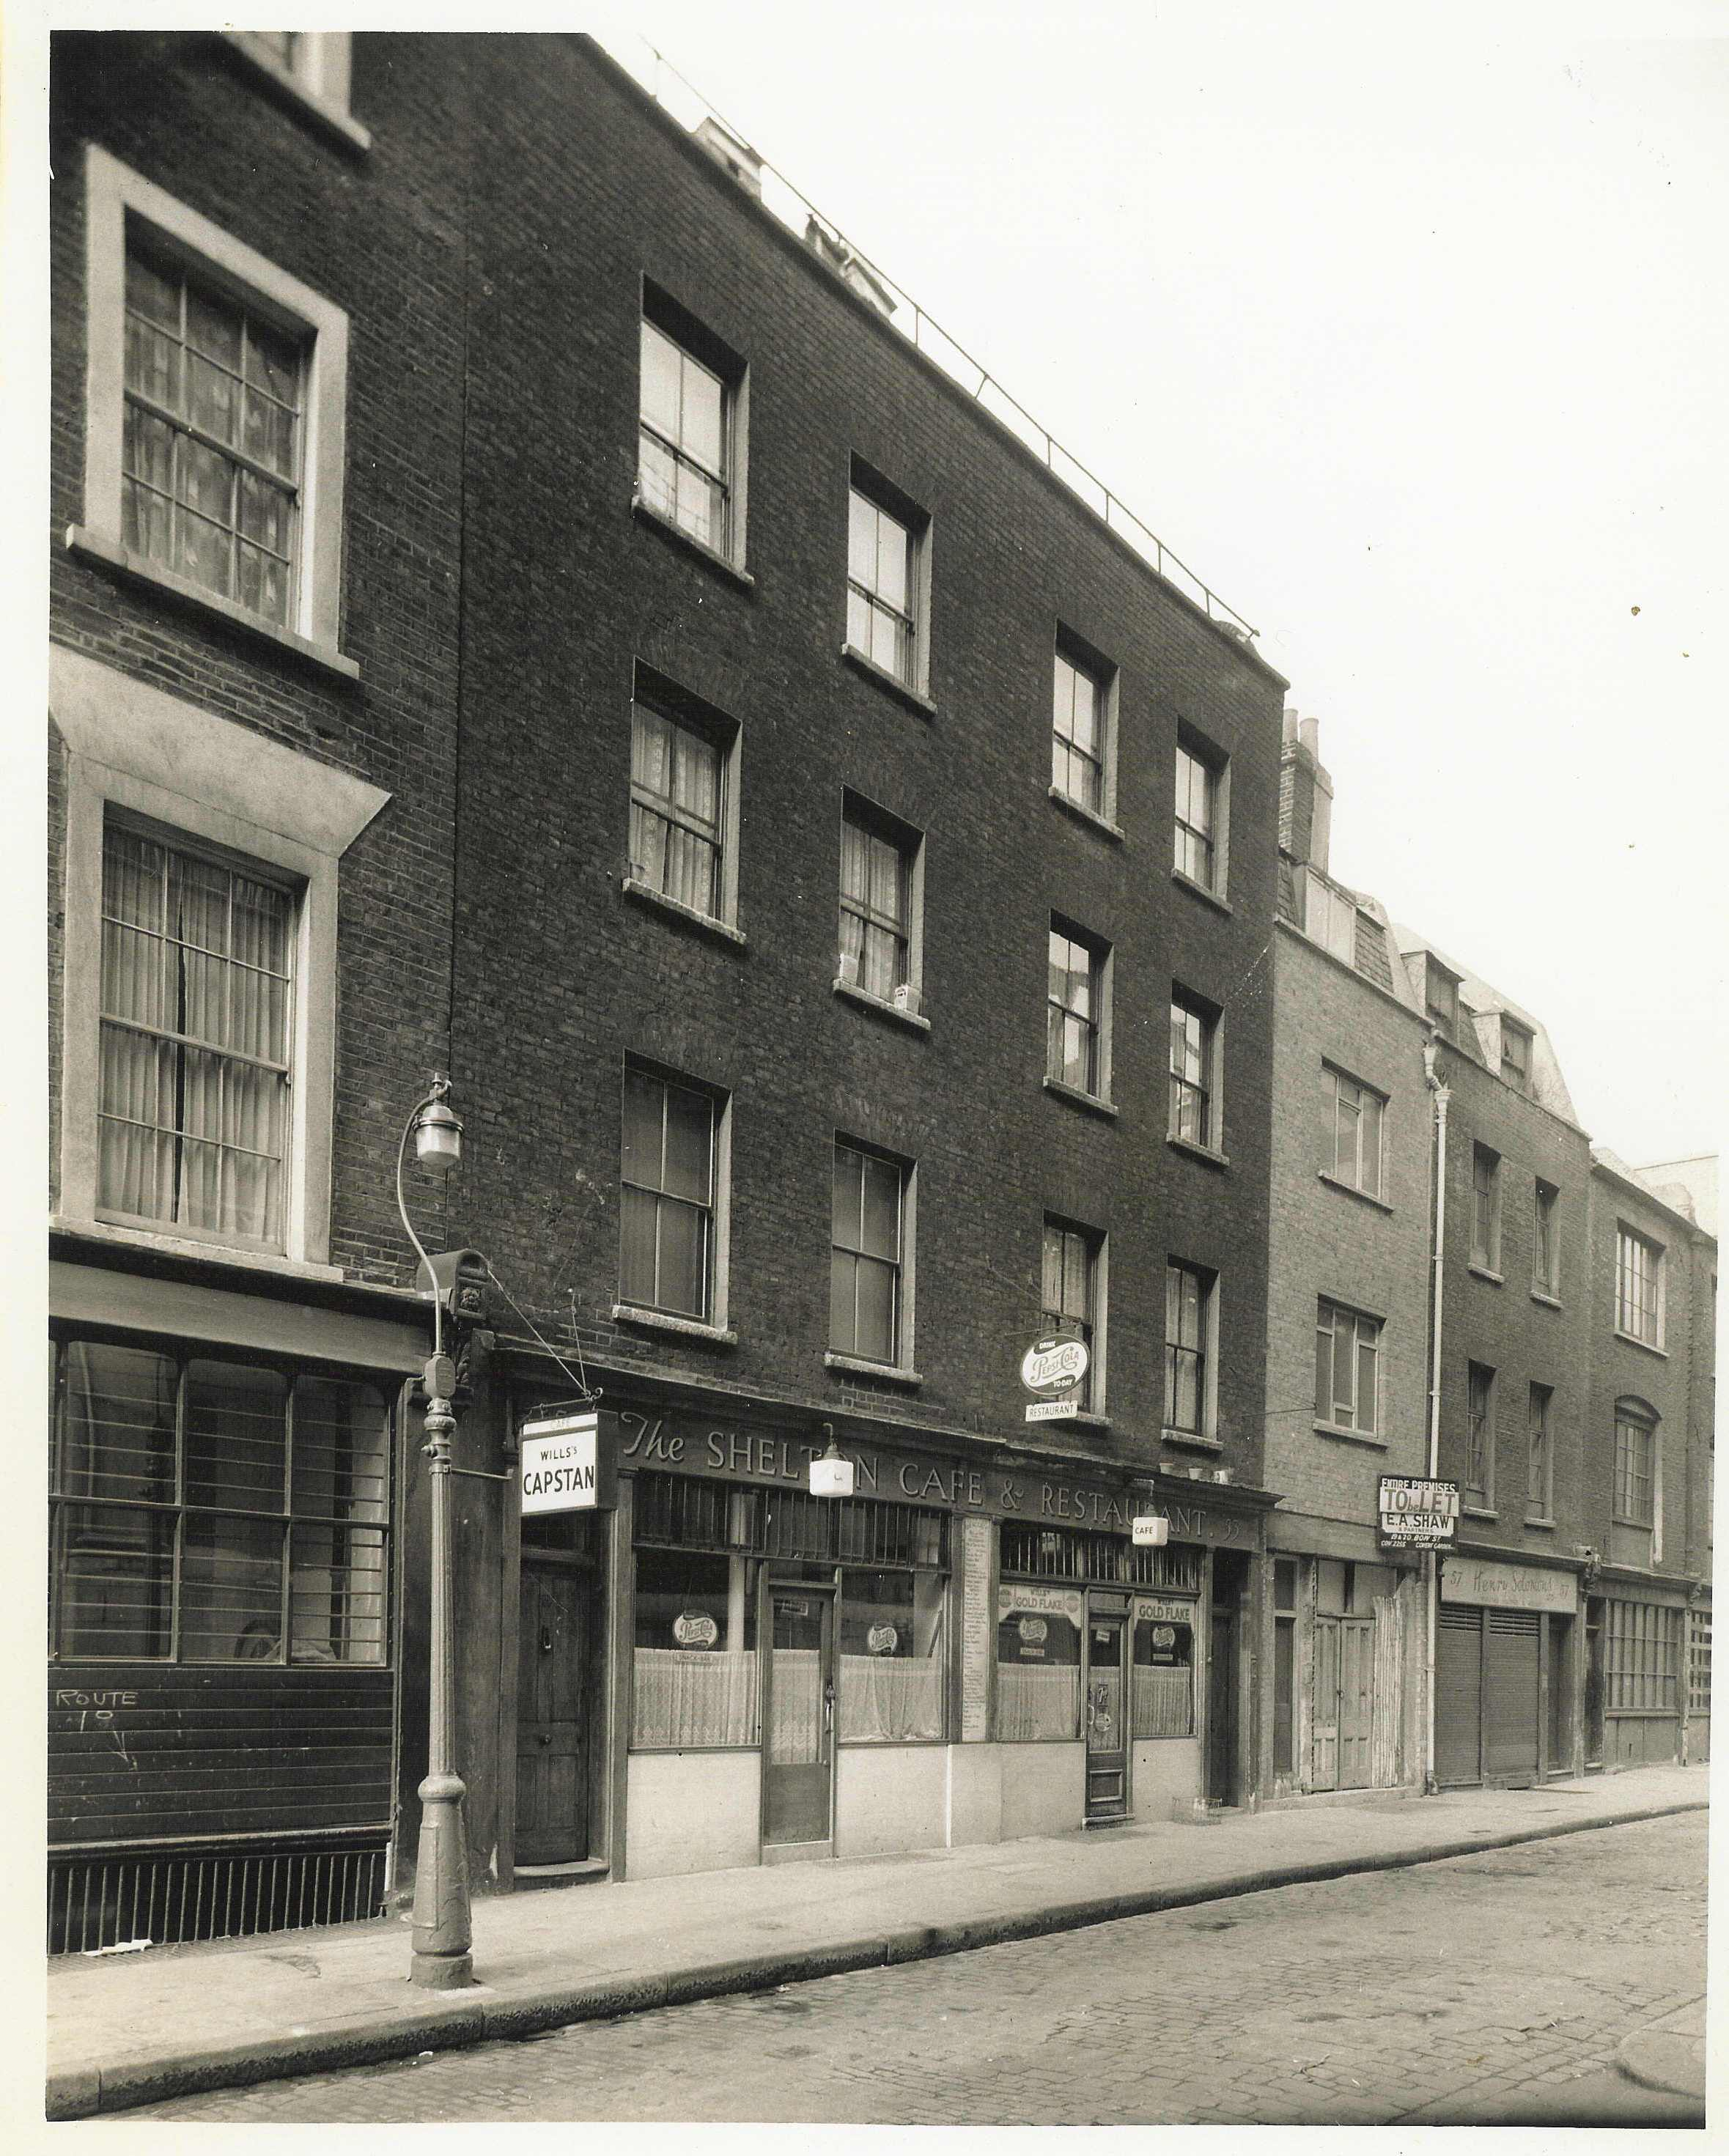 Shelton Street c. 1950, part of the Comyn Ching Triangle.